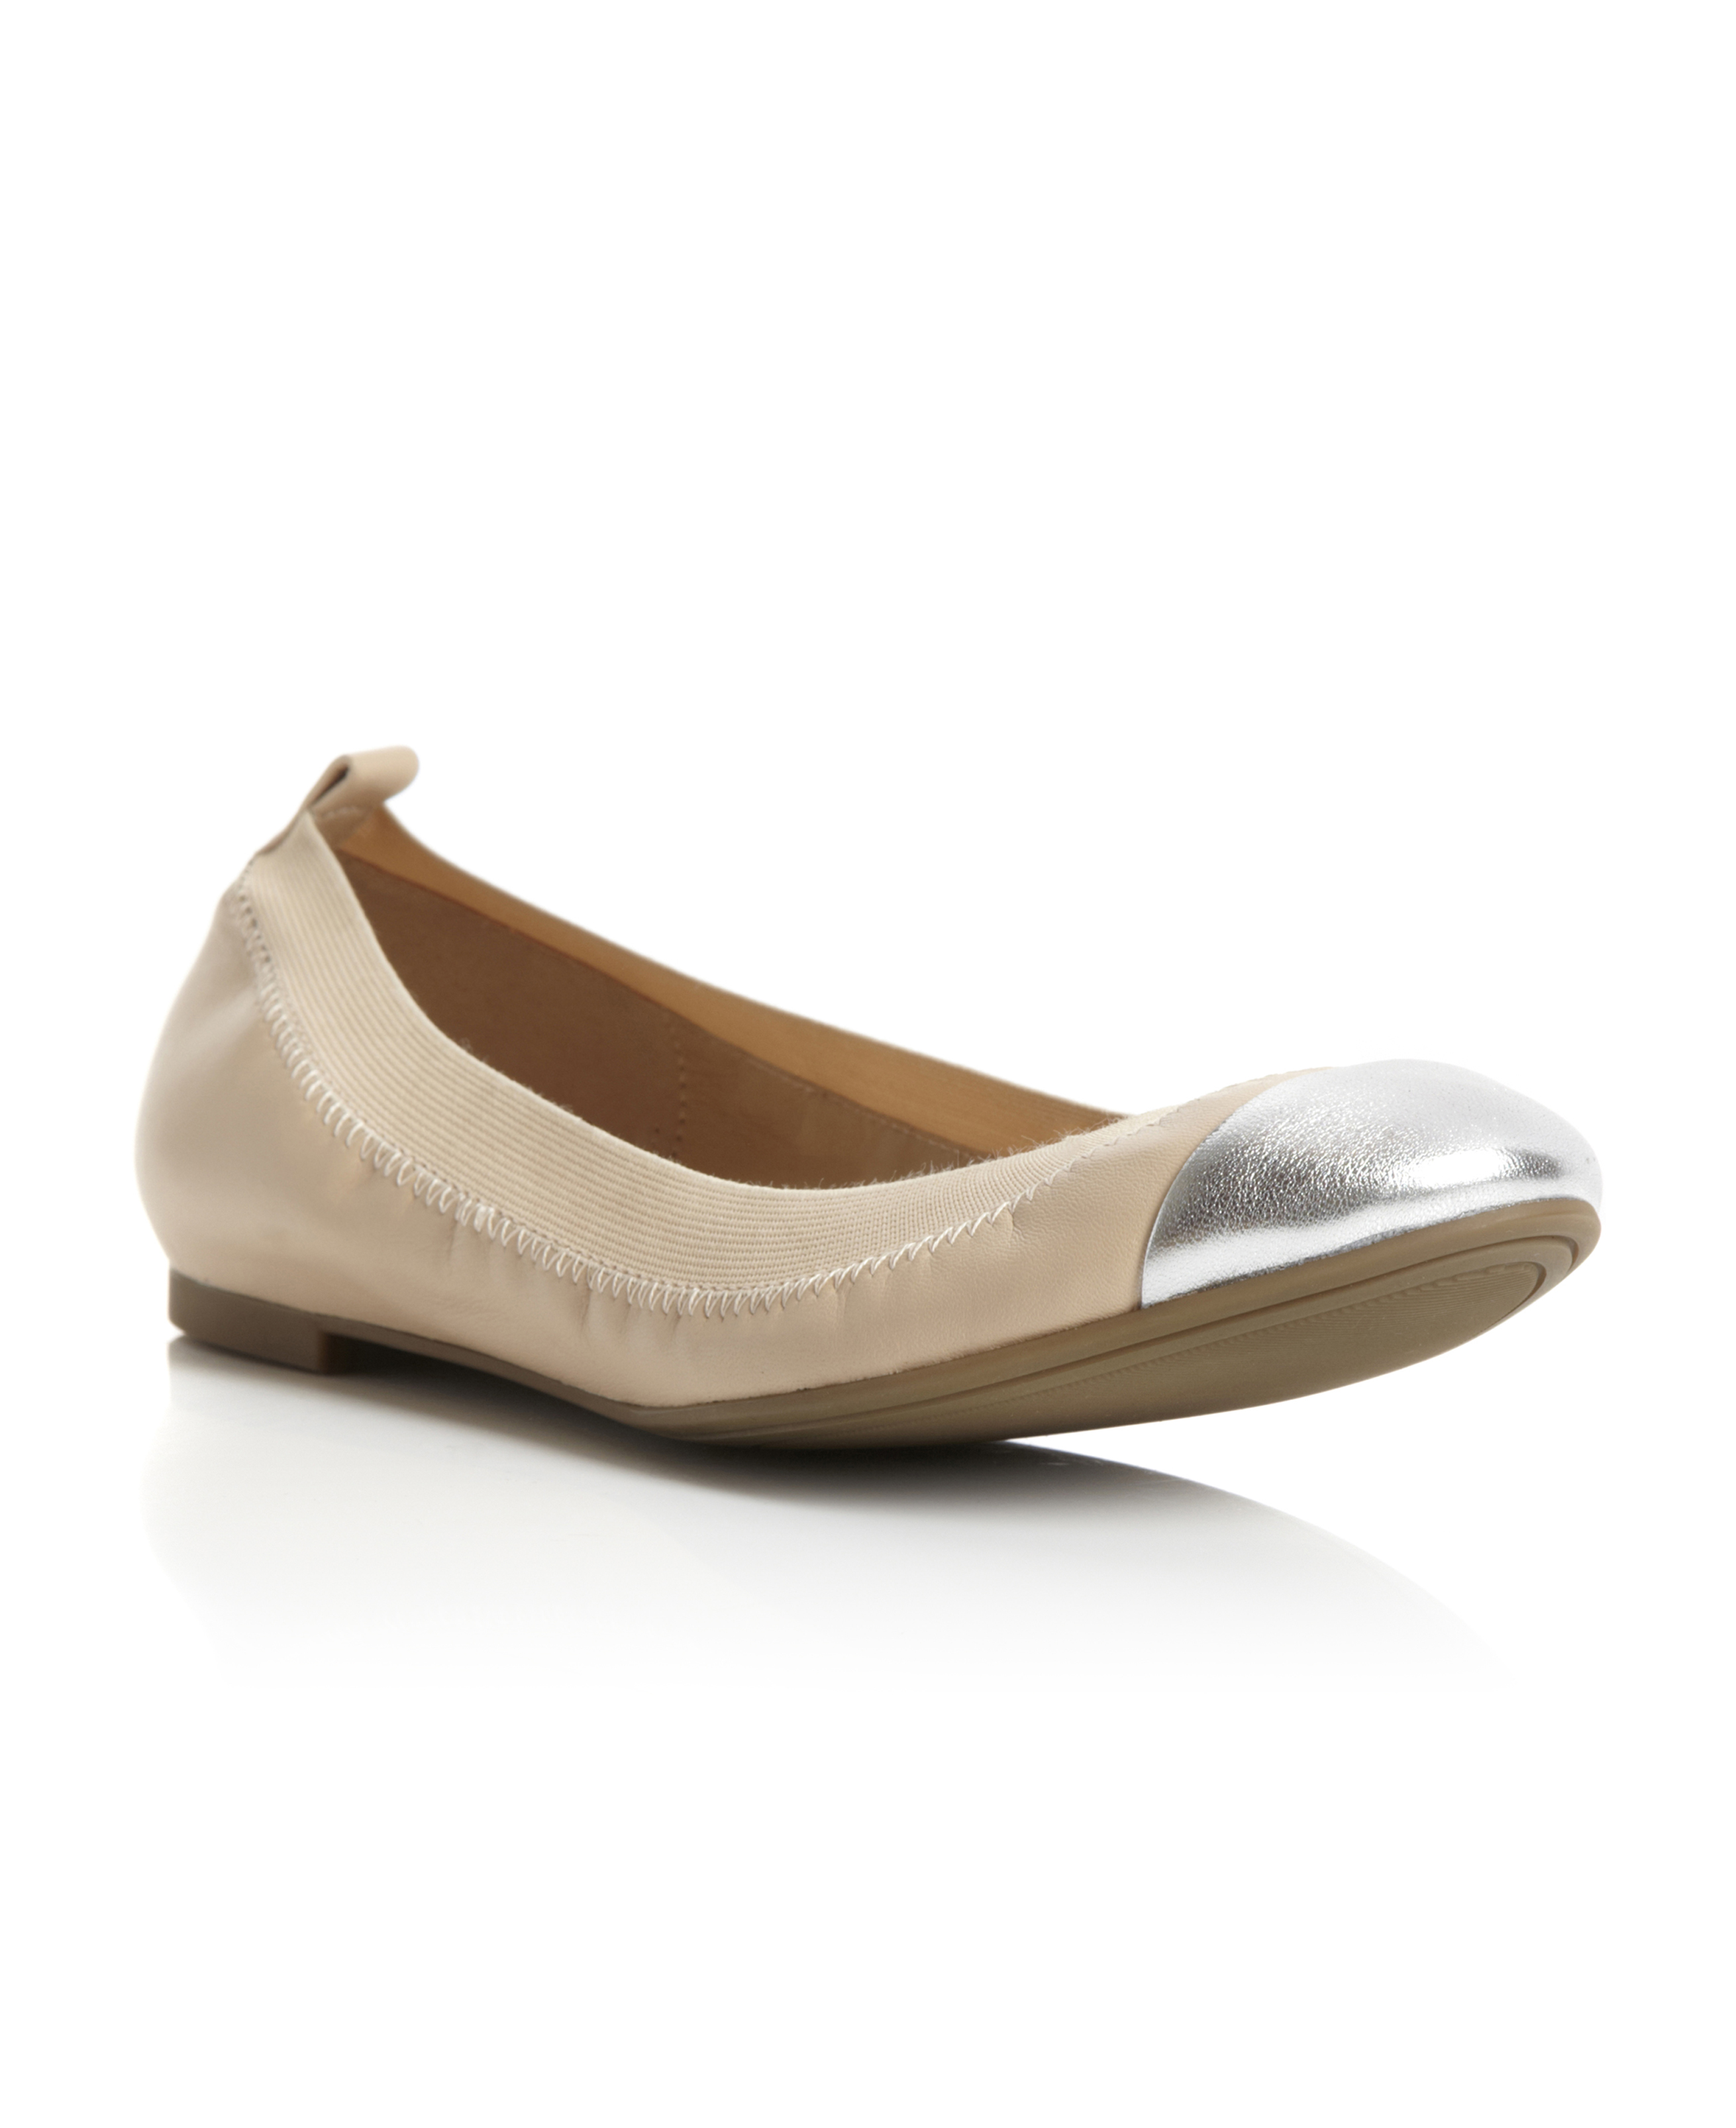 DD3-DUNE-WOMENS-NUDE-LEATHER-LADIES-METALLIC-TOE-CAP-BALLERINA-SHOES-SIZE-3-8-UK